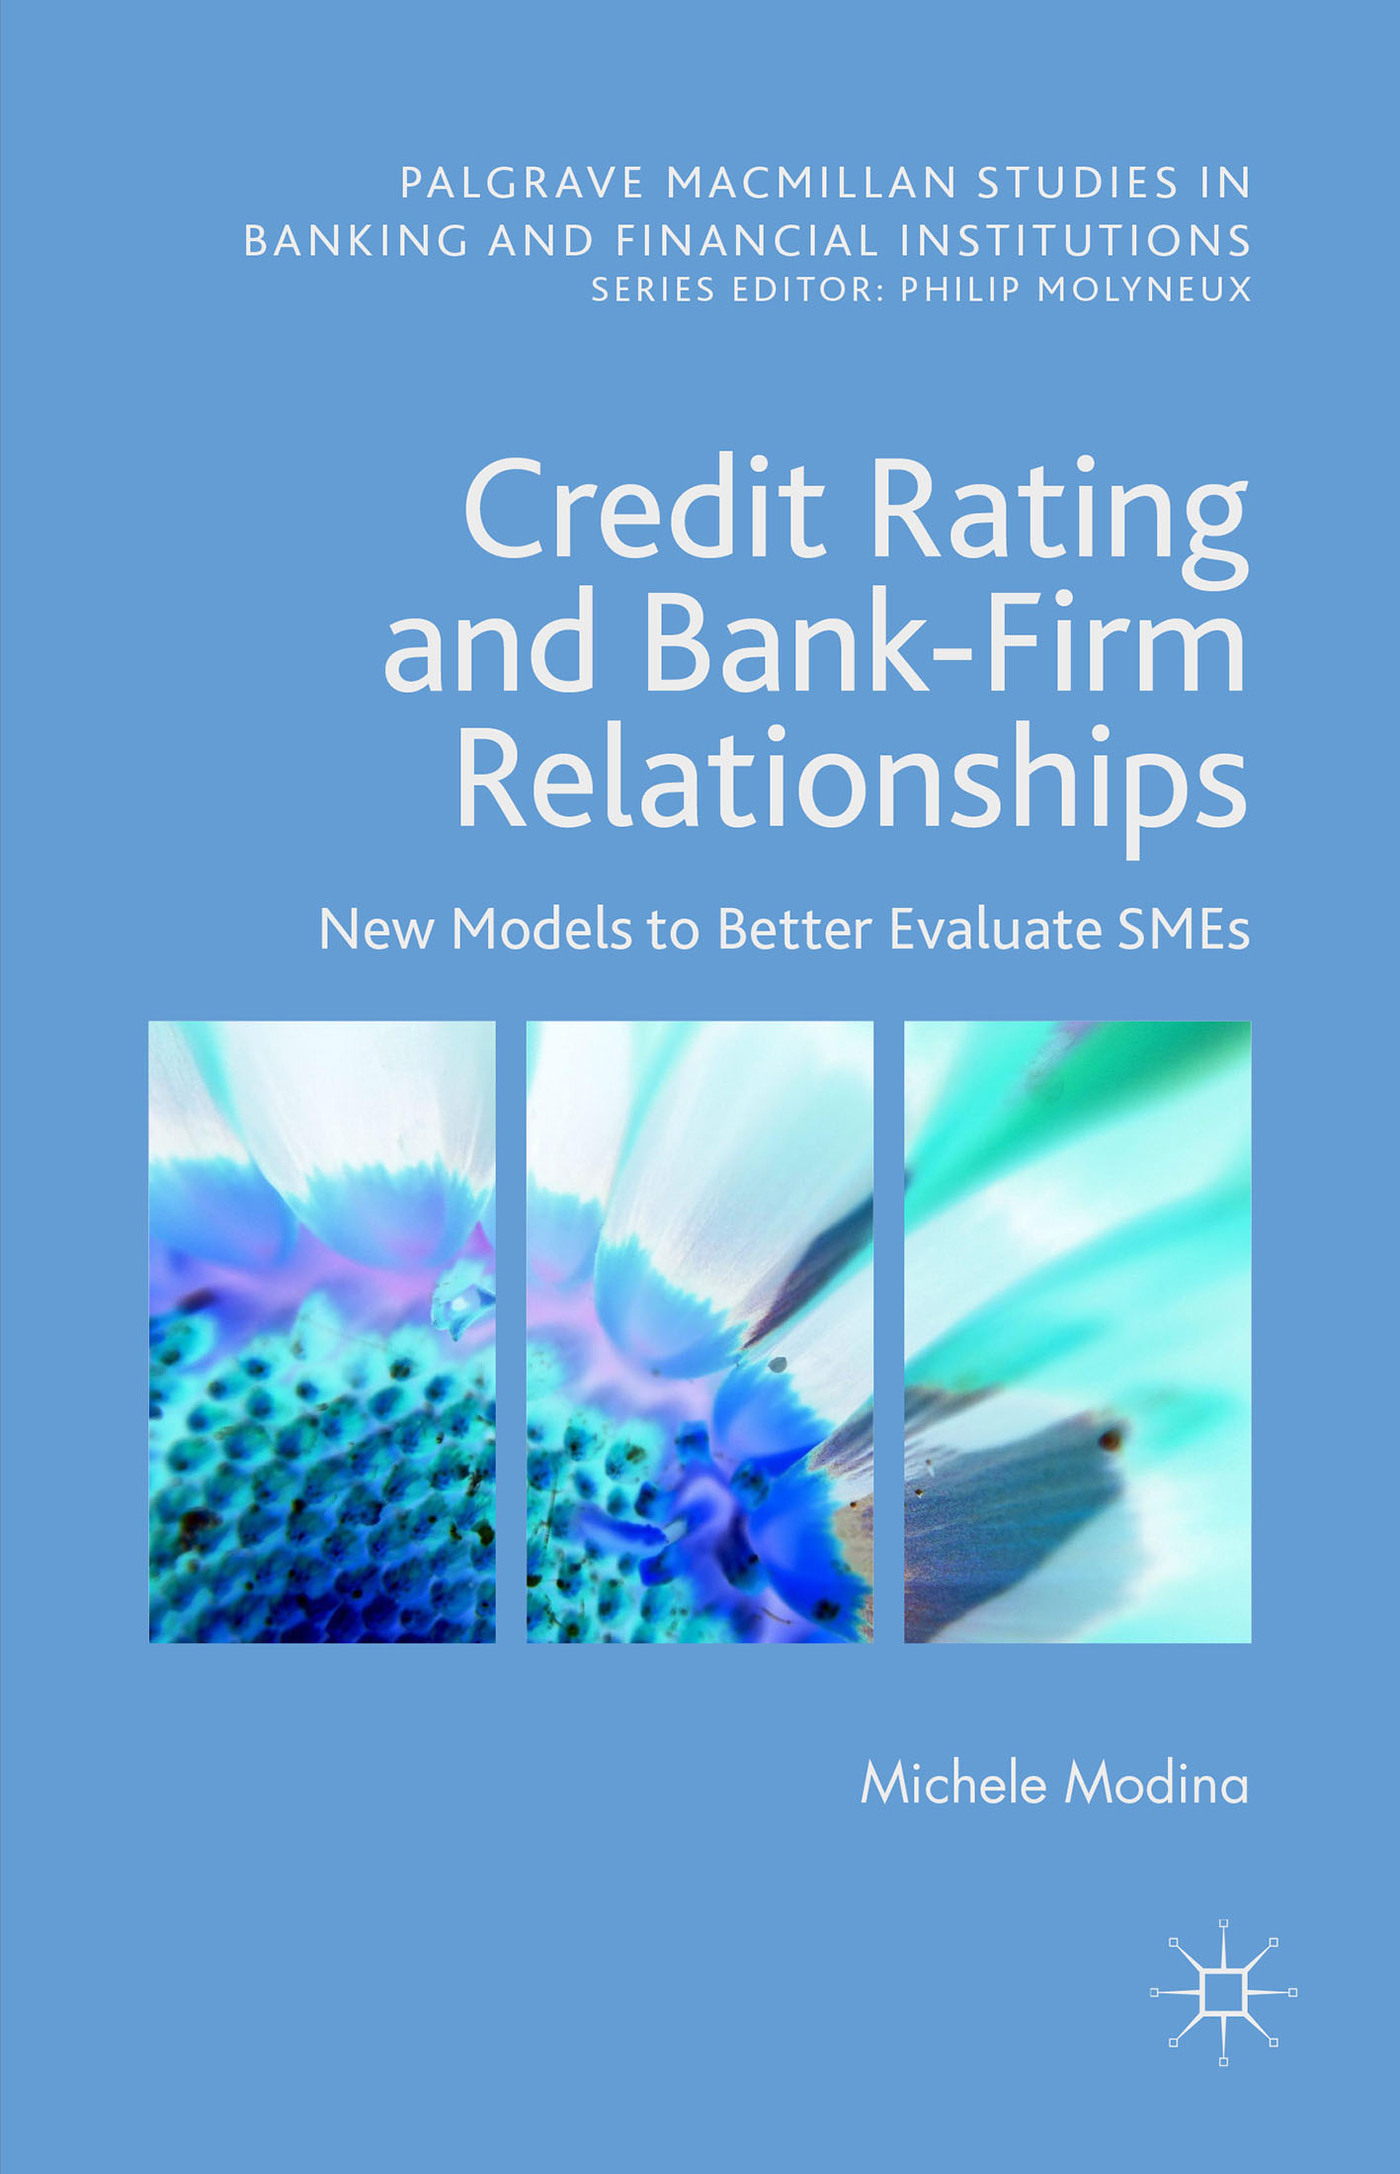 Credit Rating and Bank-Firm Relationships: New Models to Better Evaluate SMEs  by  Michele Modina